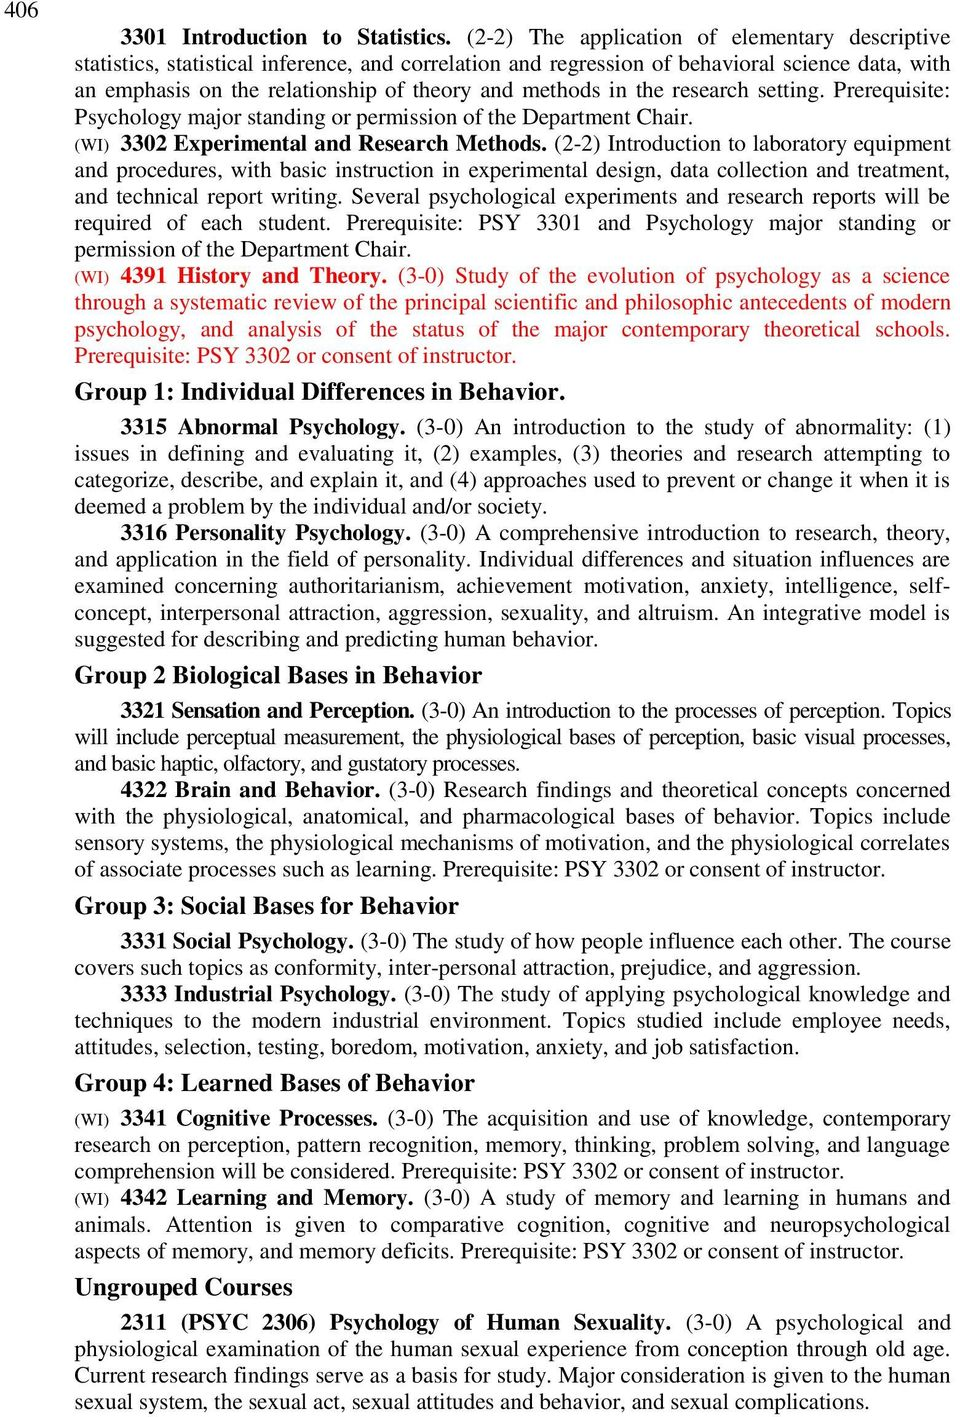 methods in the research setting. Prerequisite: Psychology major standing or permission of the Department Chair. (WI) 3302 Experimental and Research Methods.